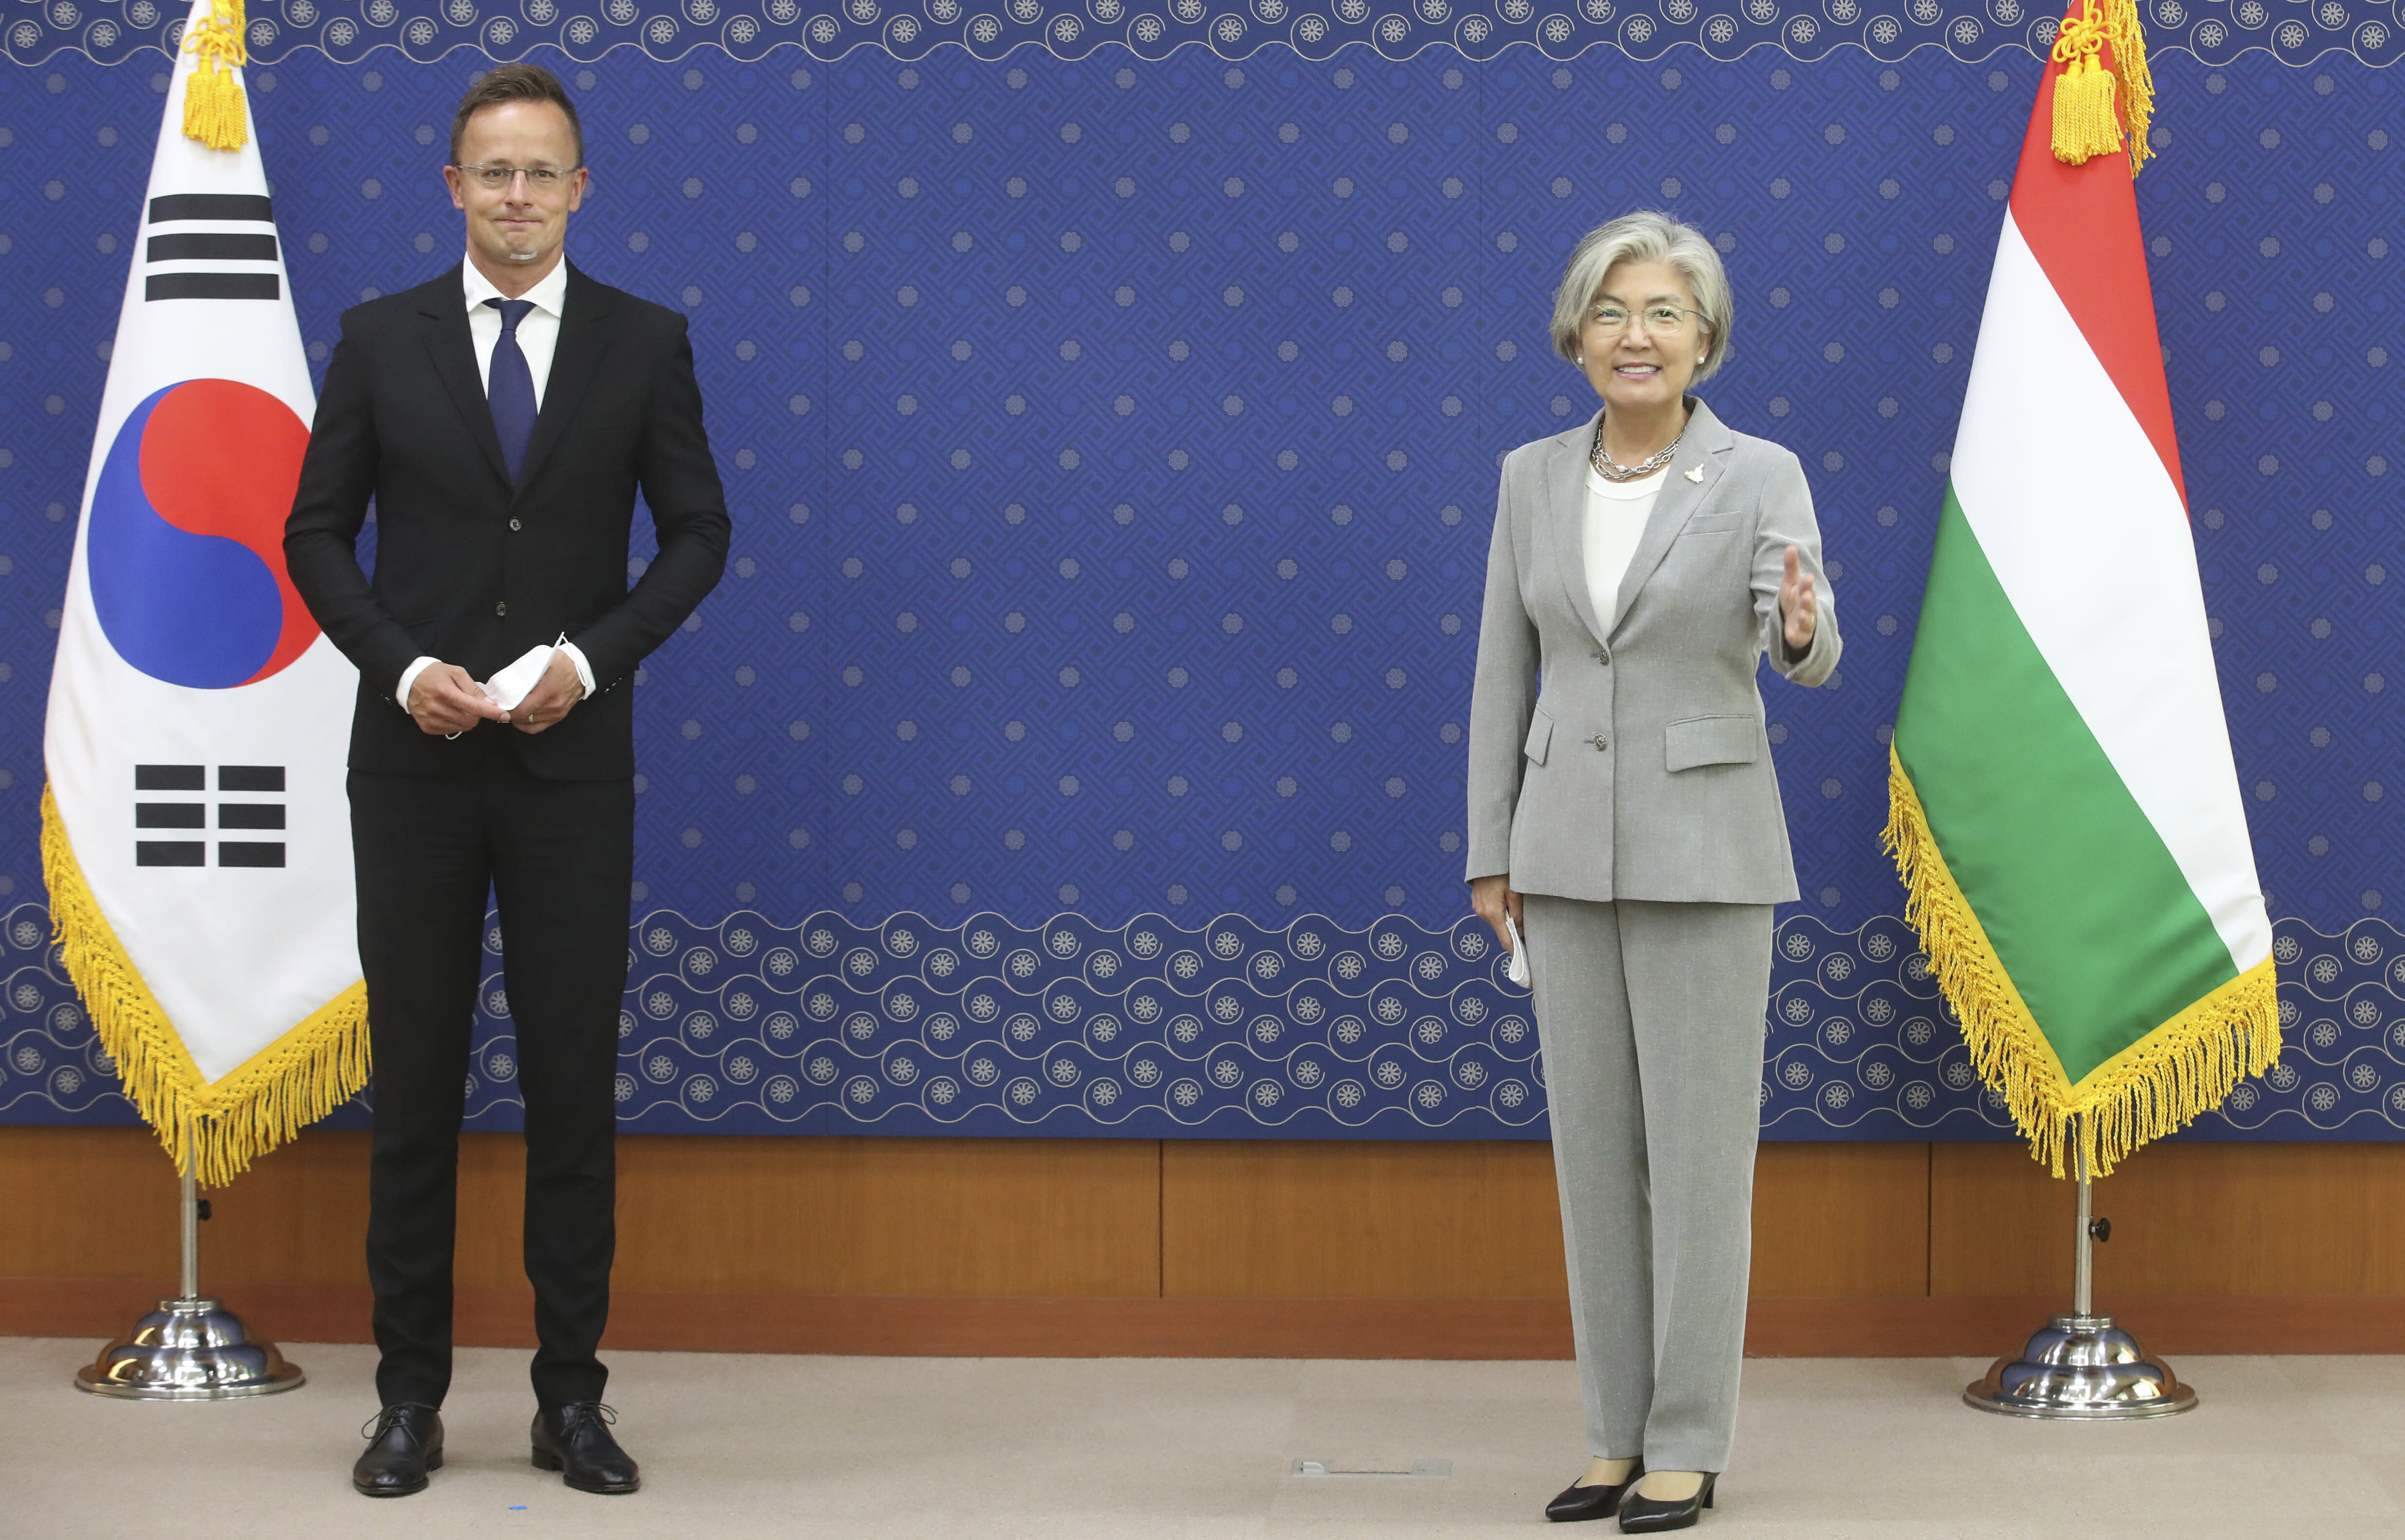 South Korean Foreign Minister Kang Kyung-wha, right, and Hungarian Foreign Minister Peter Szijjarto, left, pose for the media before their meeting at Foreign Ministry in Seoul, South Korea, Monday, July 27, 2020. (Kim Myung-won/Newsis via AP)